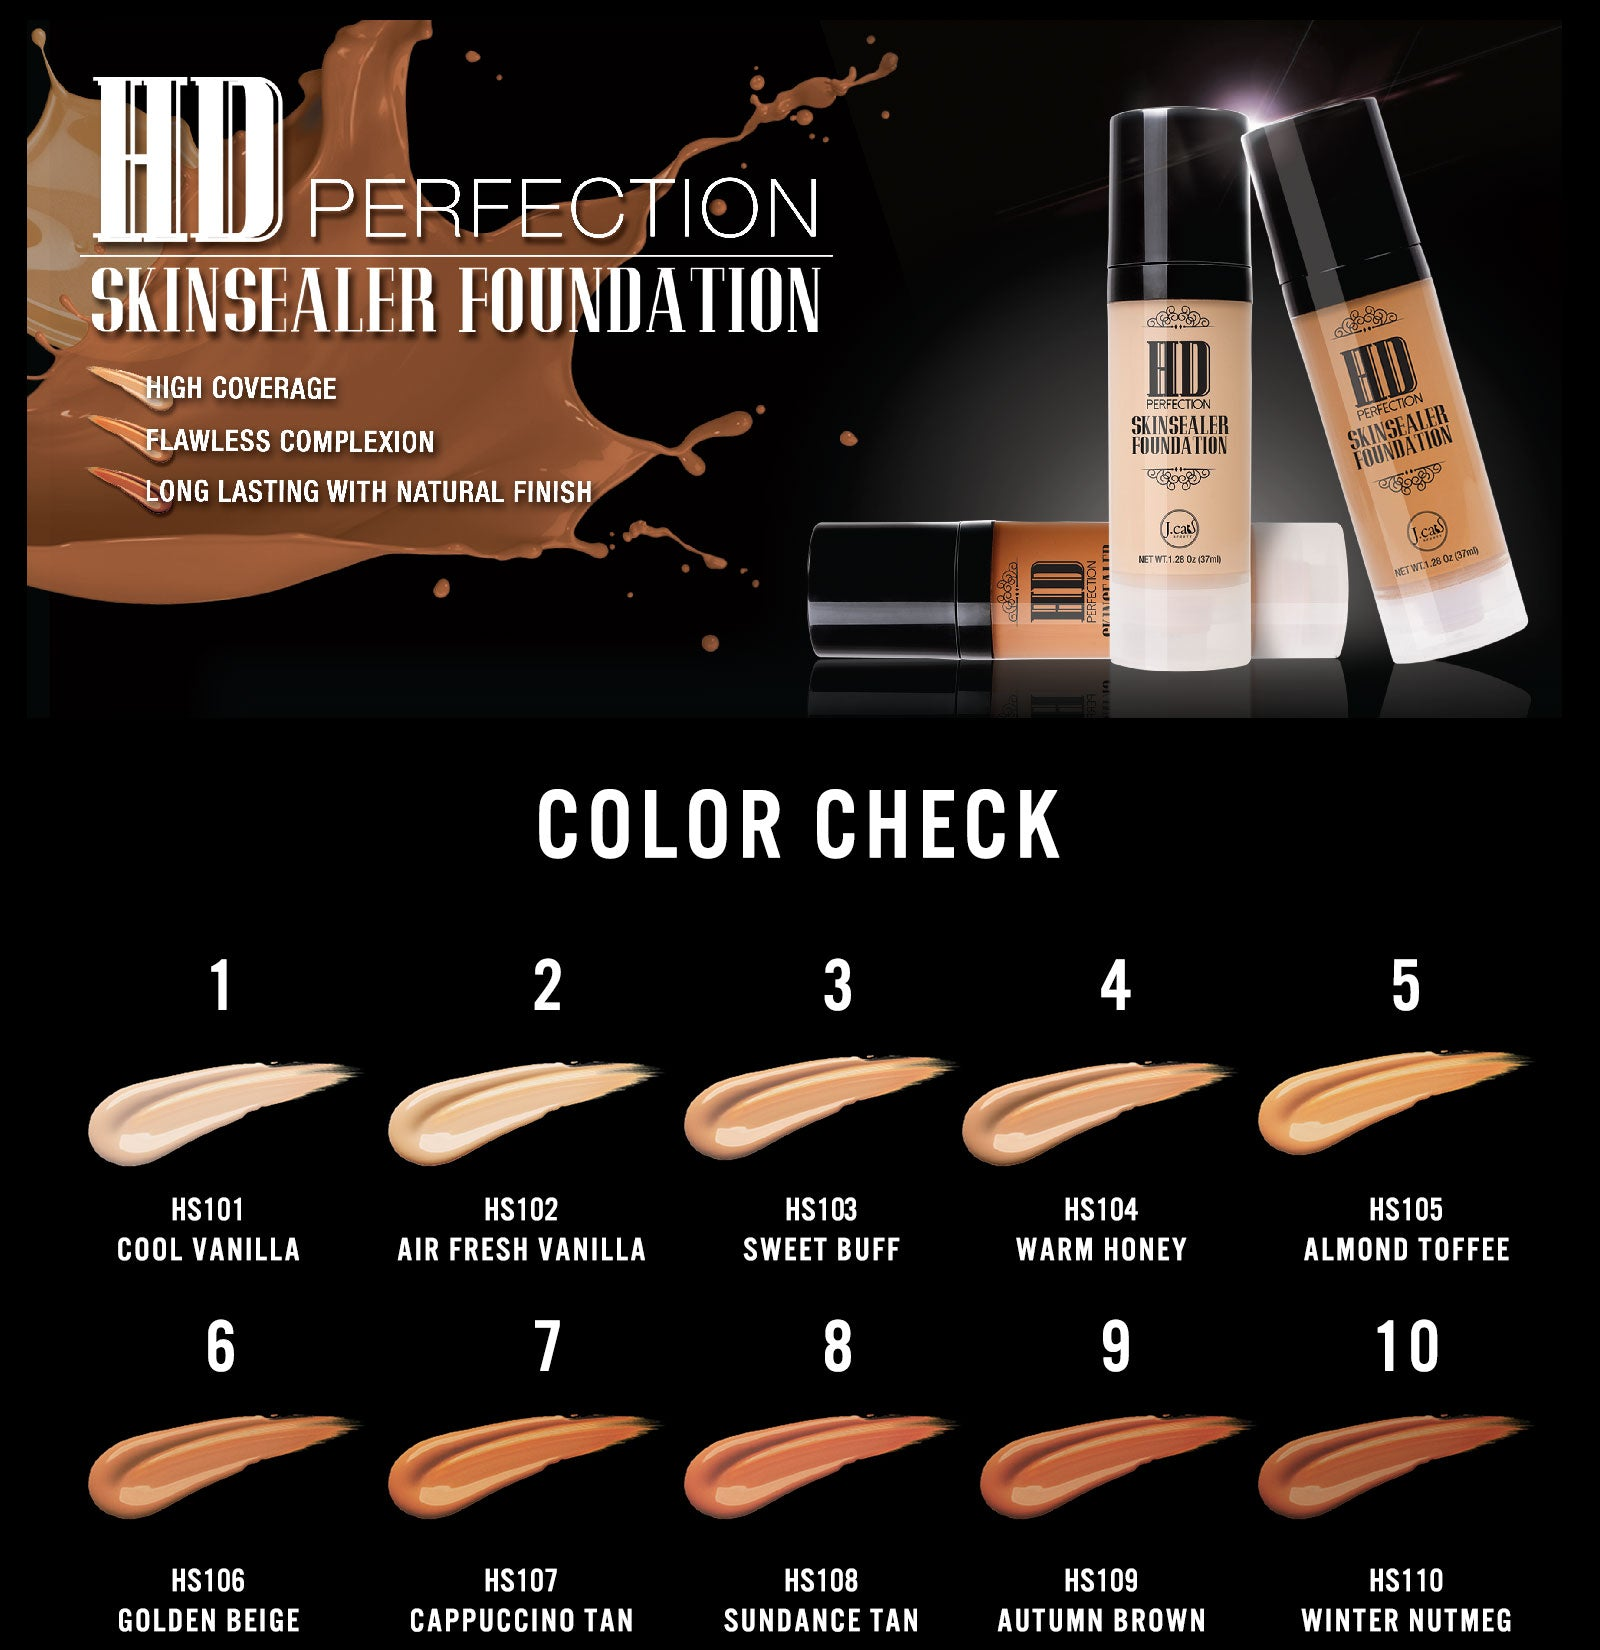 HD PERFECTION SKINSEALER FOUNDATION Autumn Brown HS109